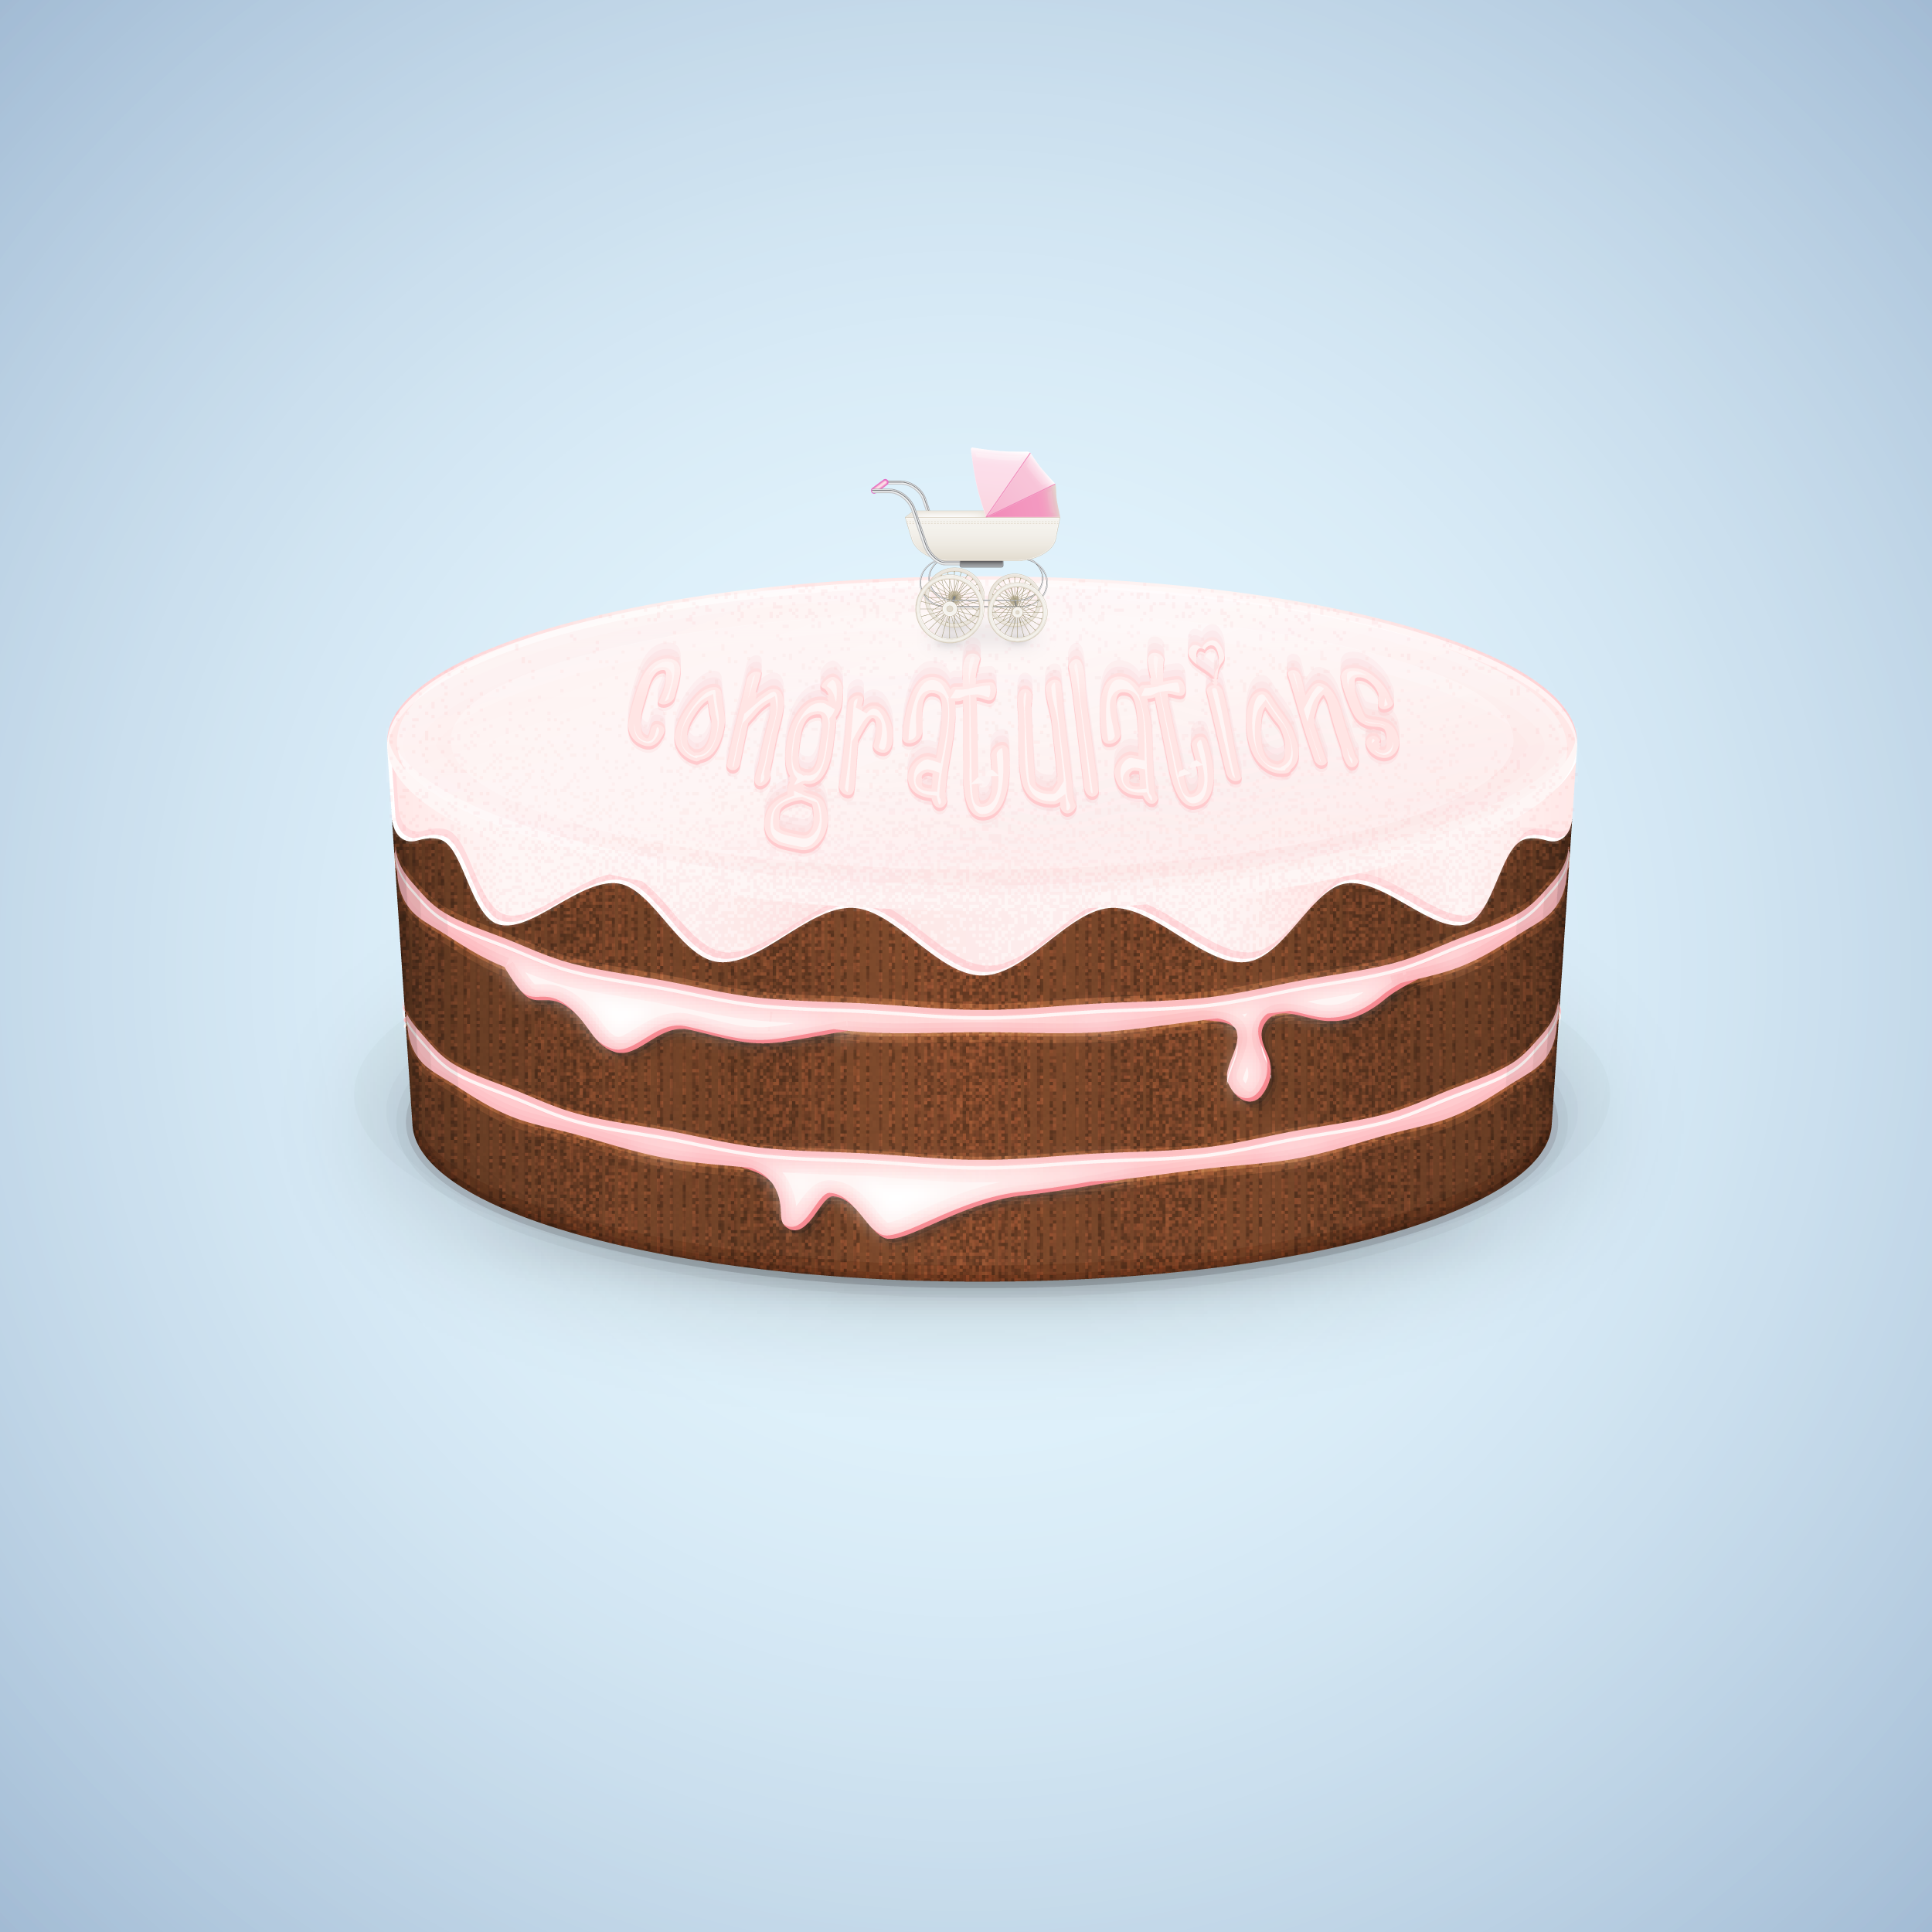 Cake Art Reddit : Chocolate Cake Illustration by duceduc on DeviantArt